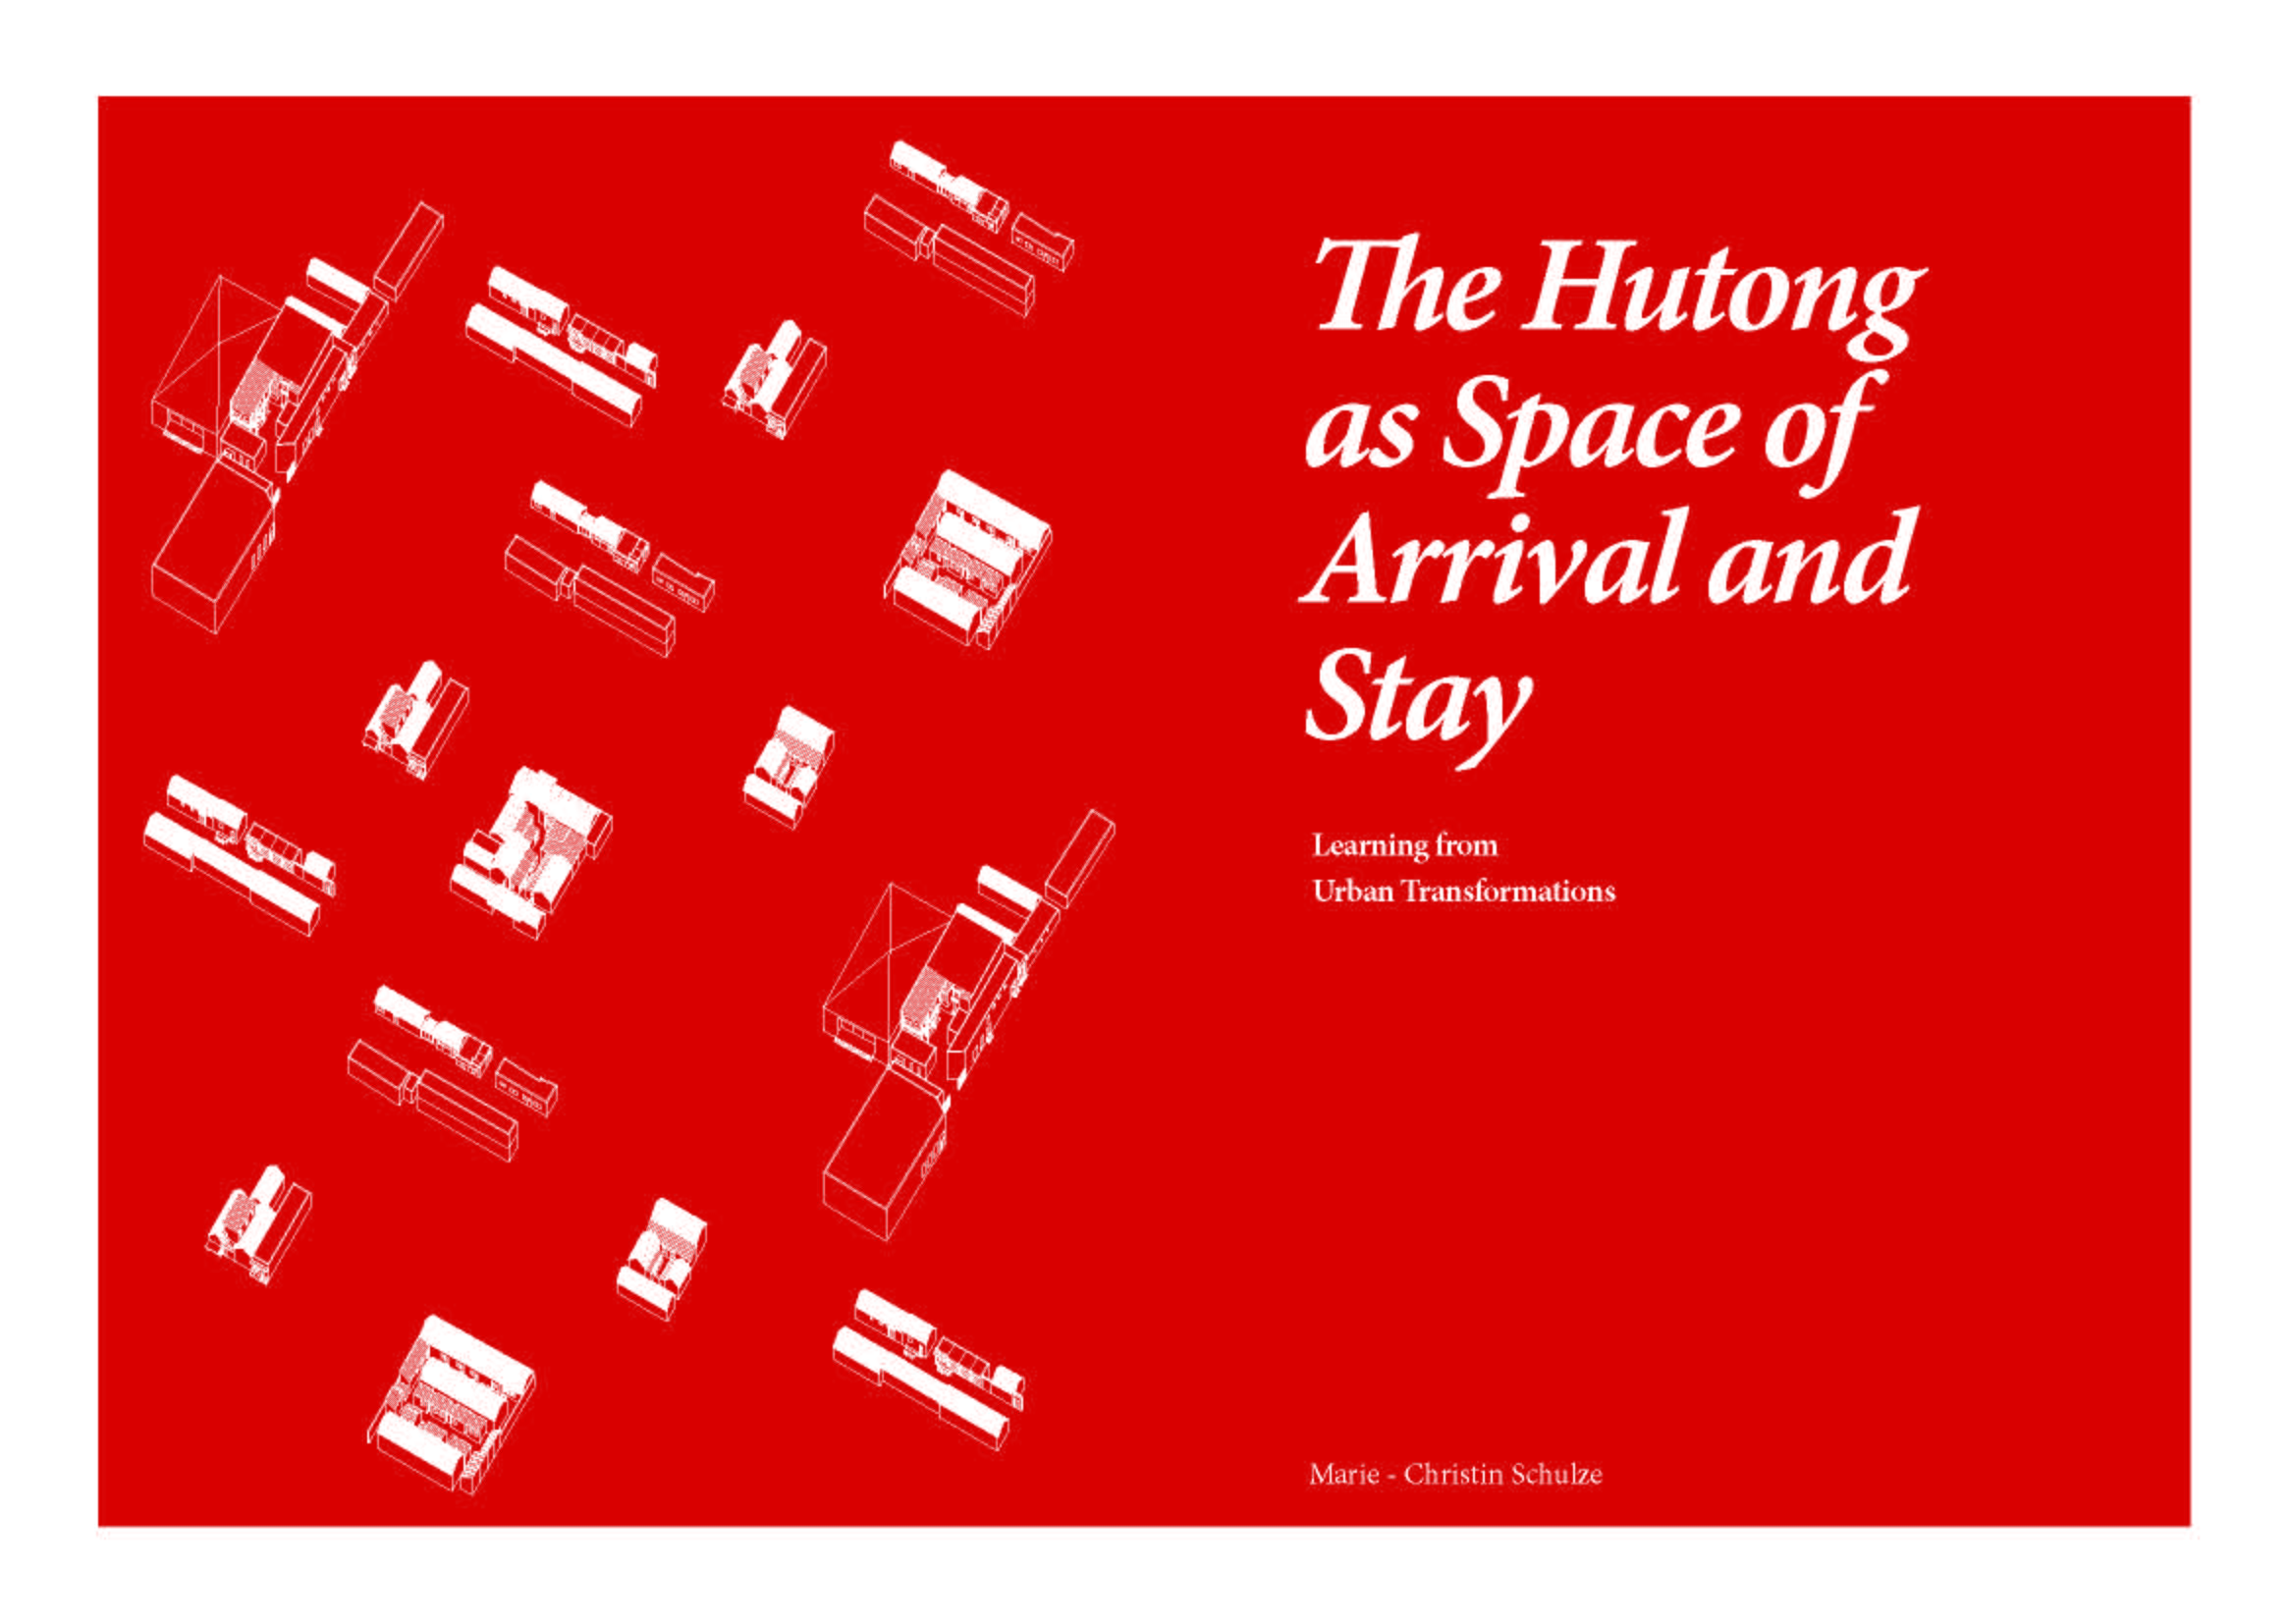 http://www.ud.hcu-hamburg.de/projects/master-theses/the-hutong-as-space-of-arrival-and-stay-learning-from-urban-transformations-2016